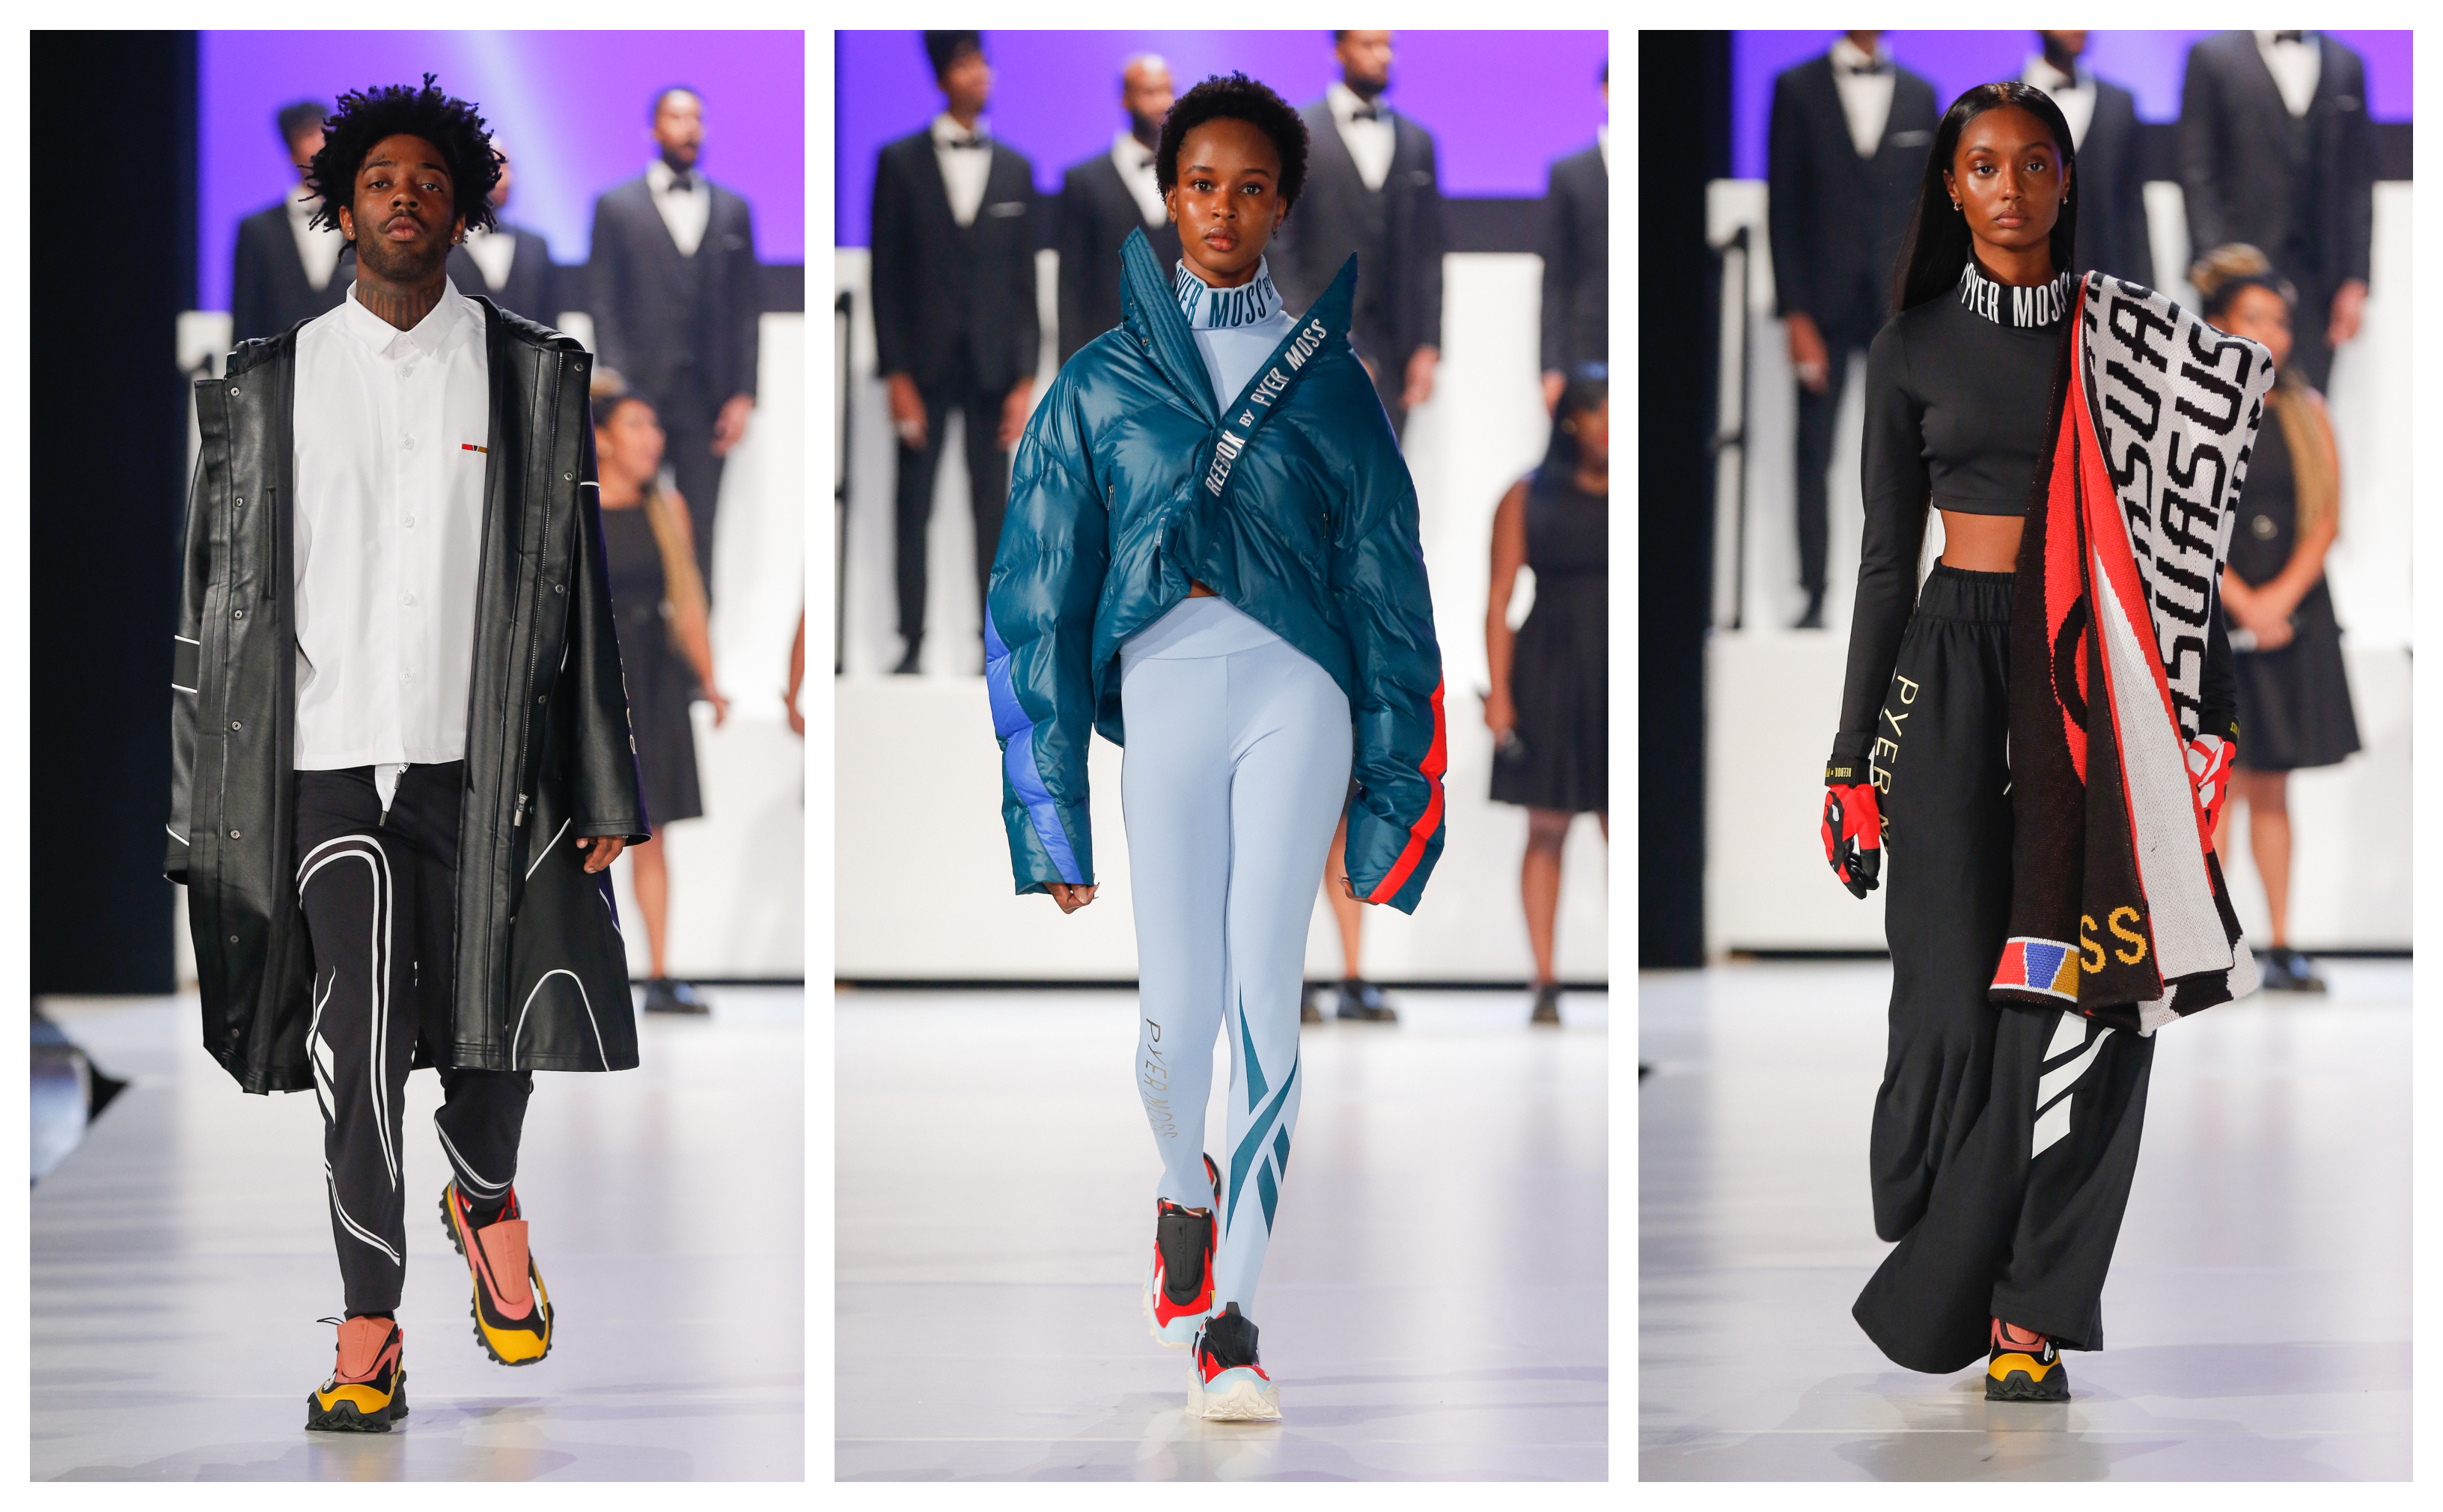 Looks from the Pyer Moss show